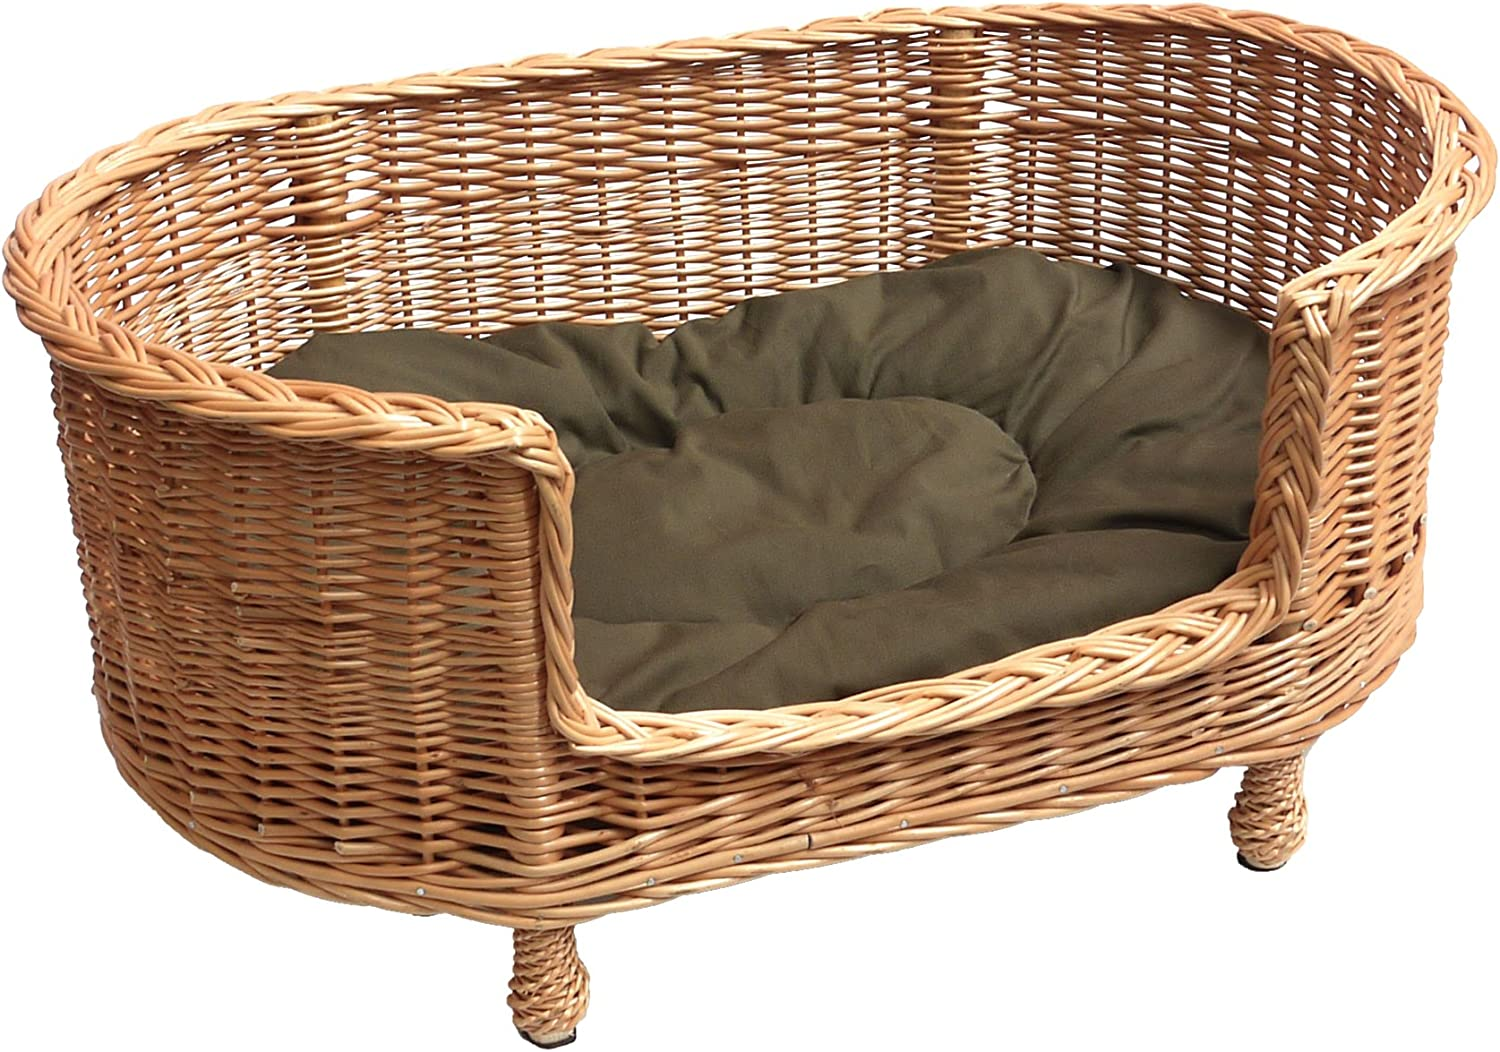 L-A Creation French Artisan Soft cushion basket for cat or small dog 405060 cm